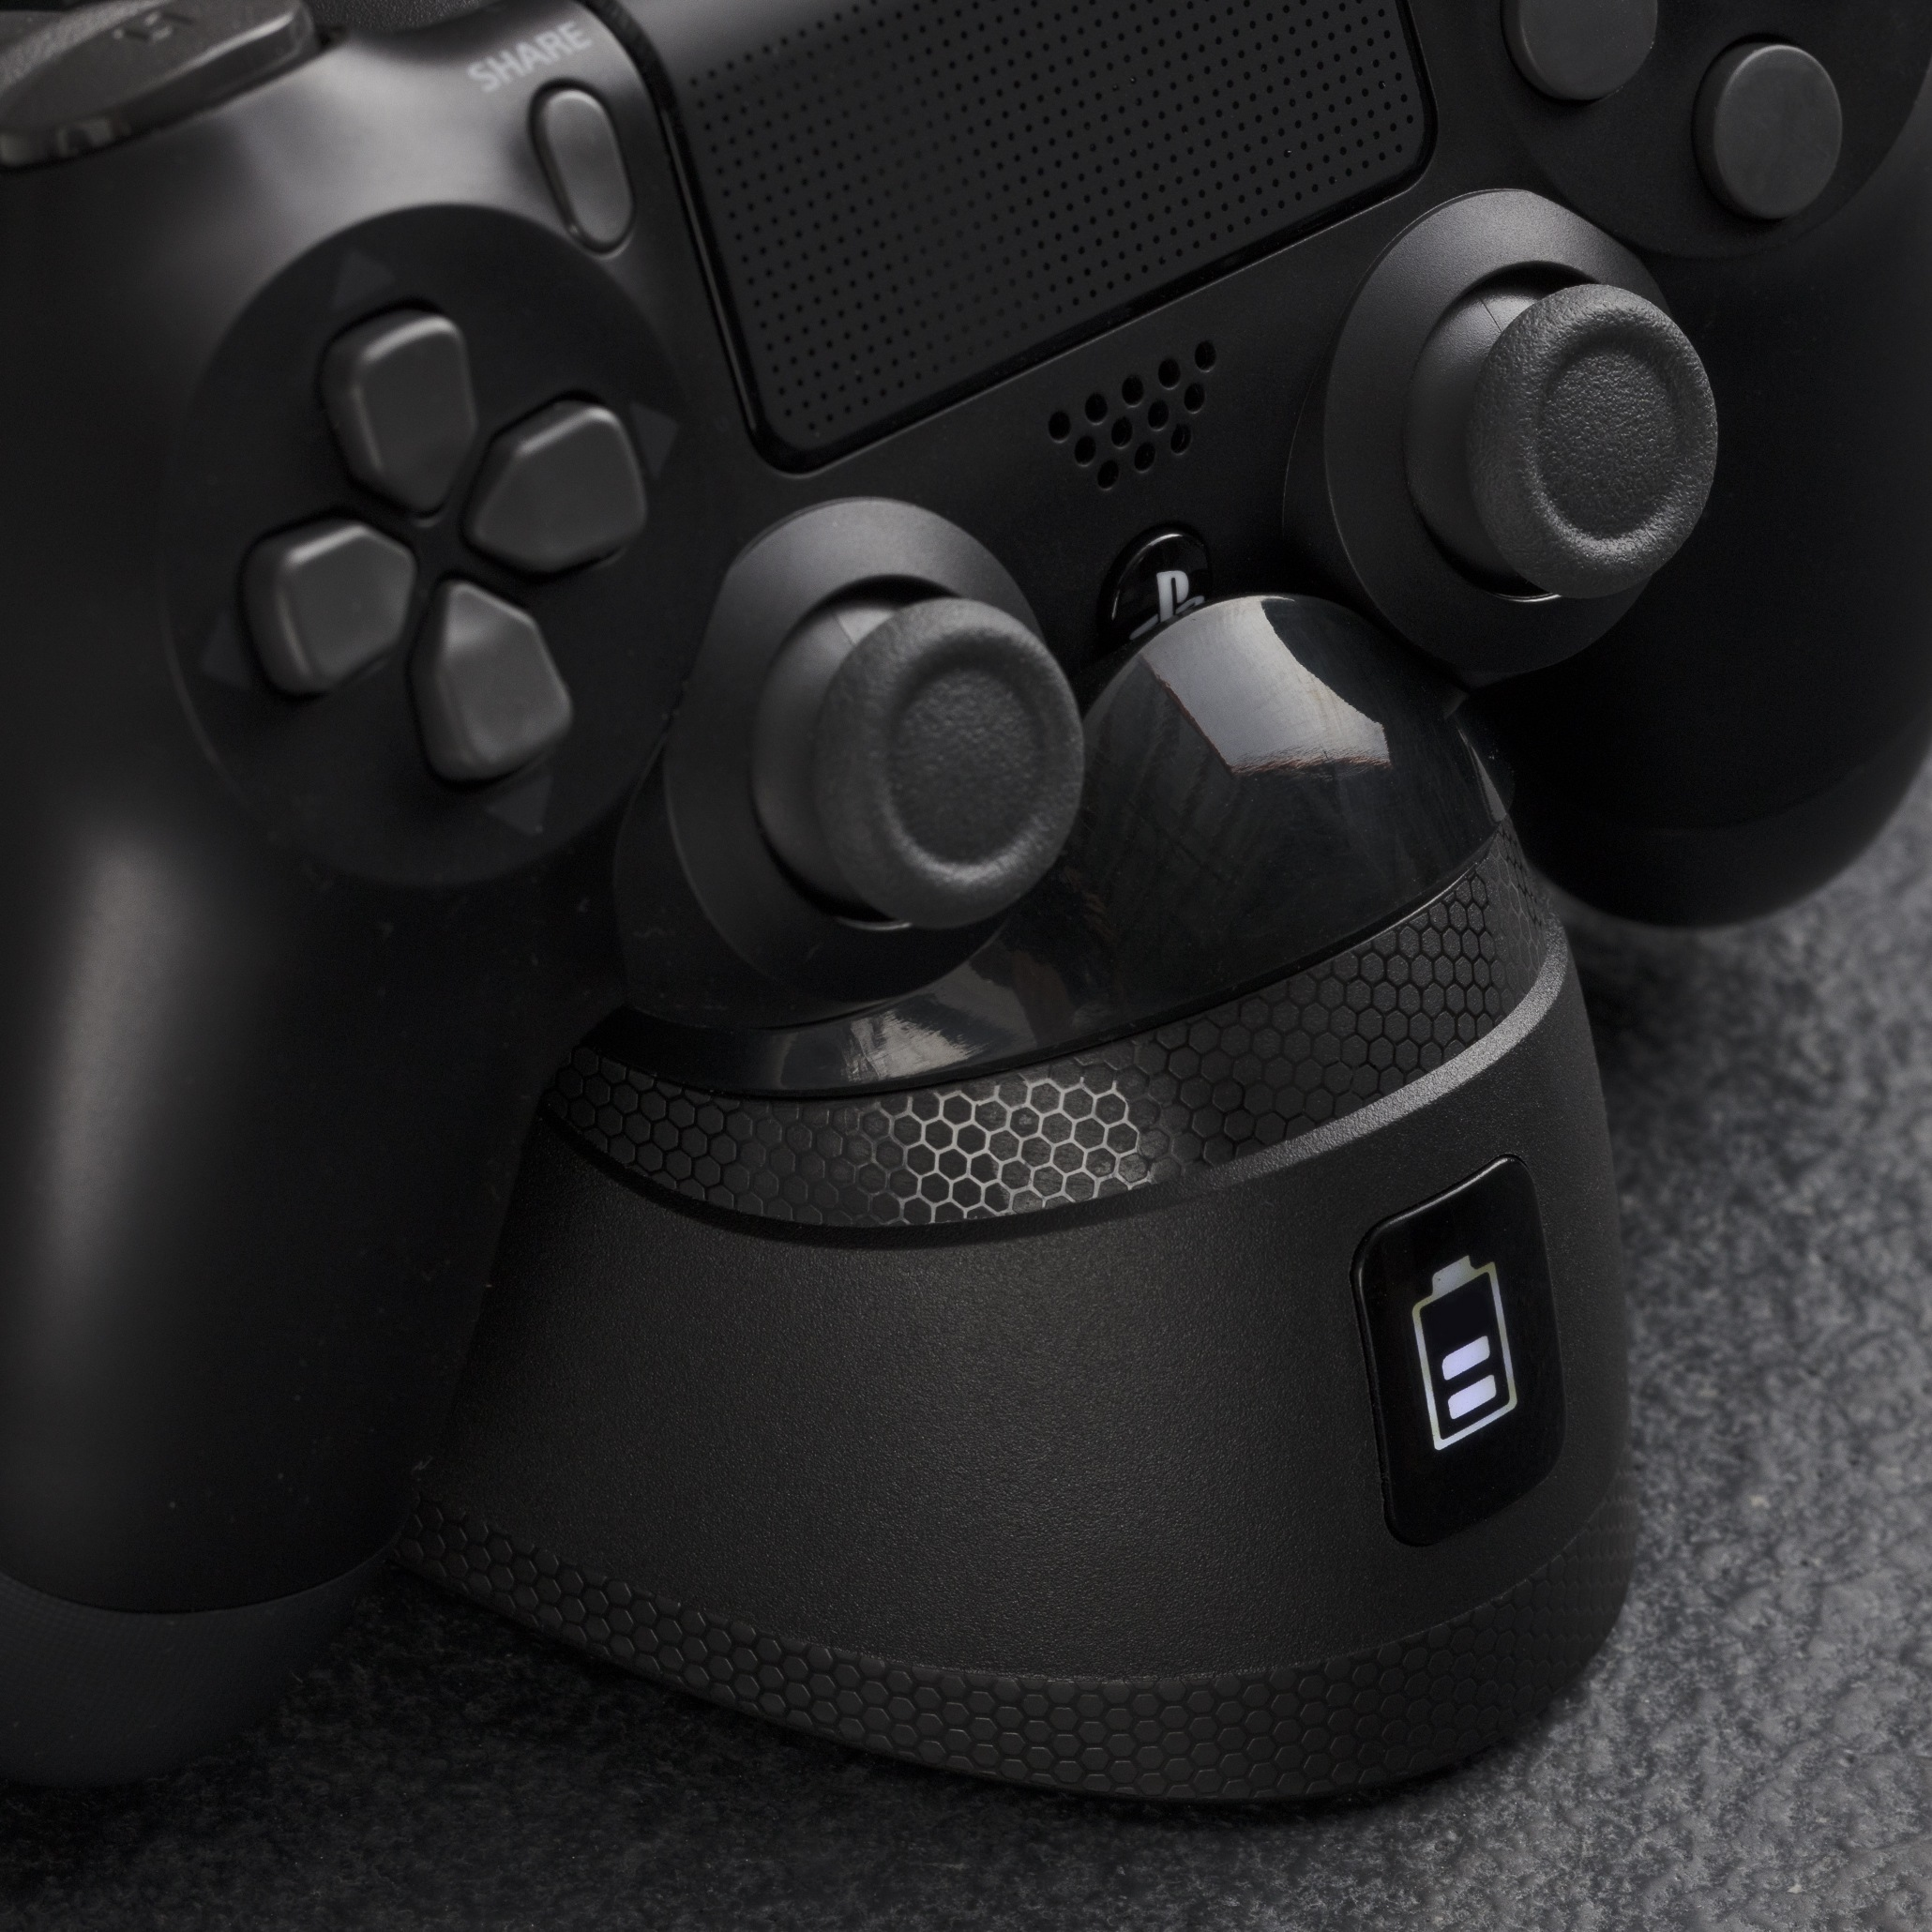 HyperX ChargePlay Duo Review - DualShock 4 Controller Charger